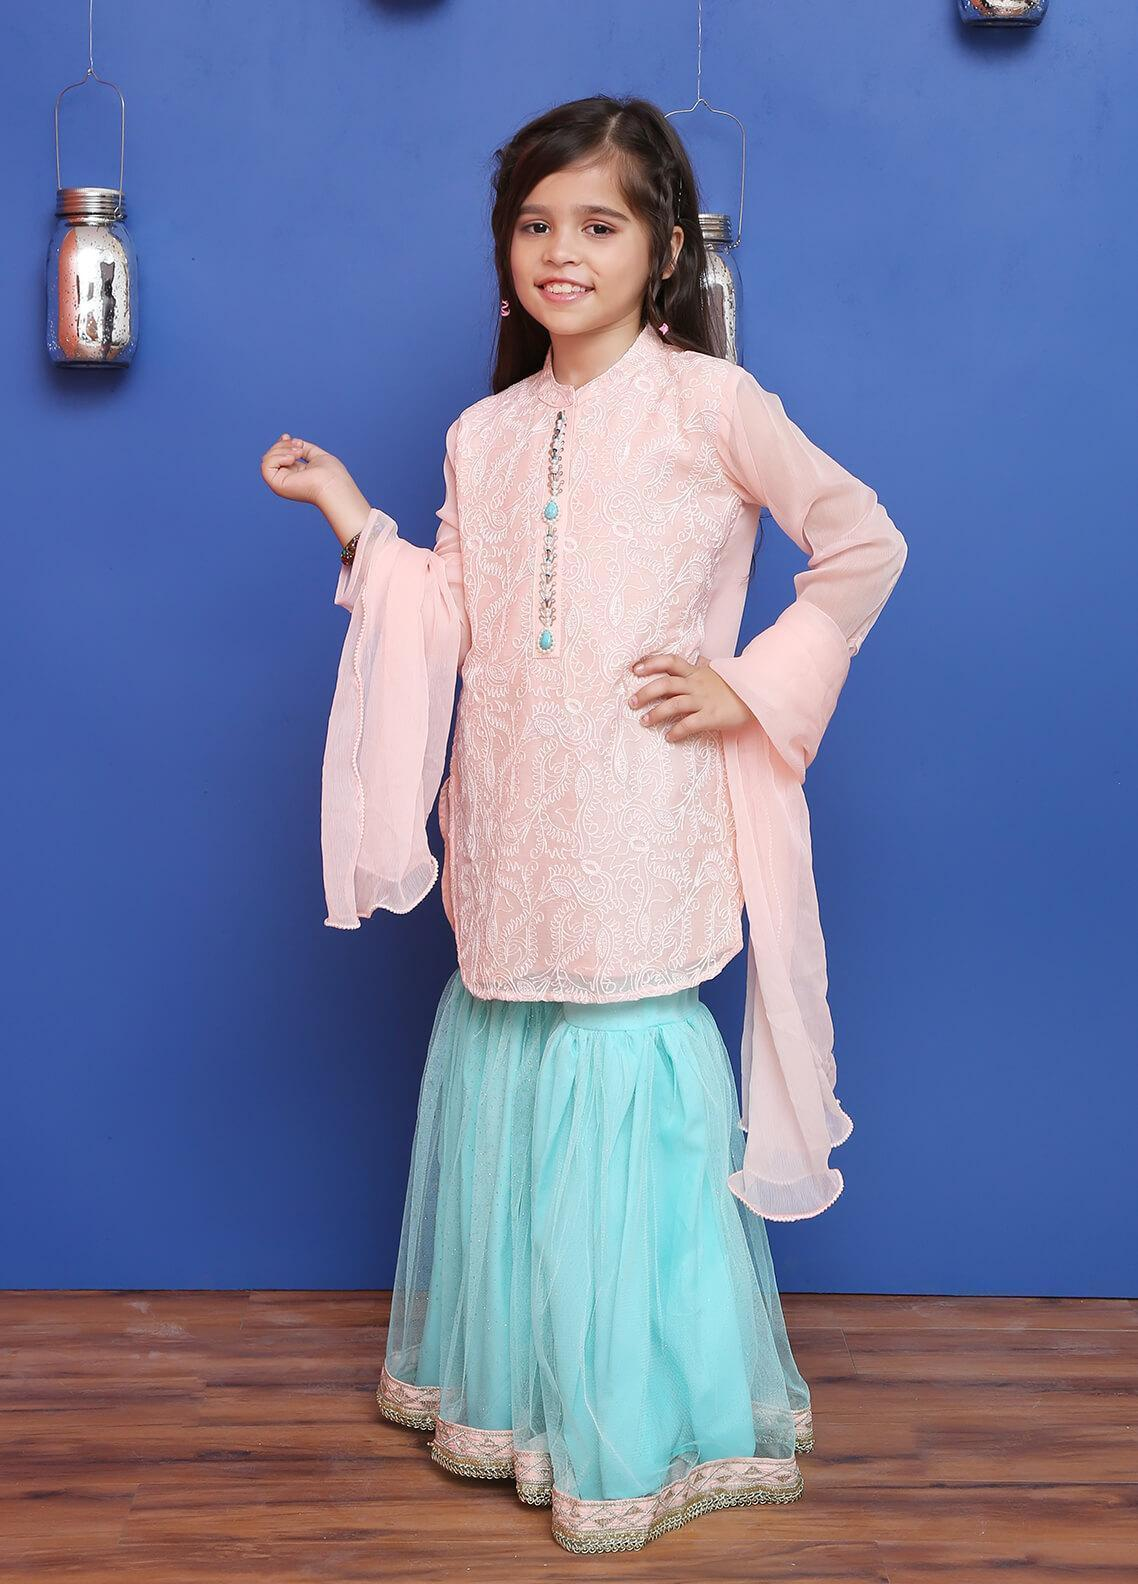 Ochre Chiffon Formal Girls 3 Piece Suit - OFW 191 Light Pink